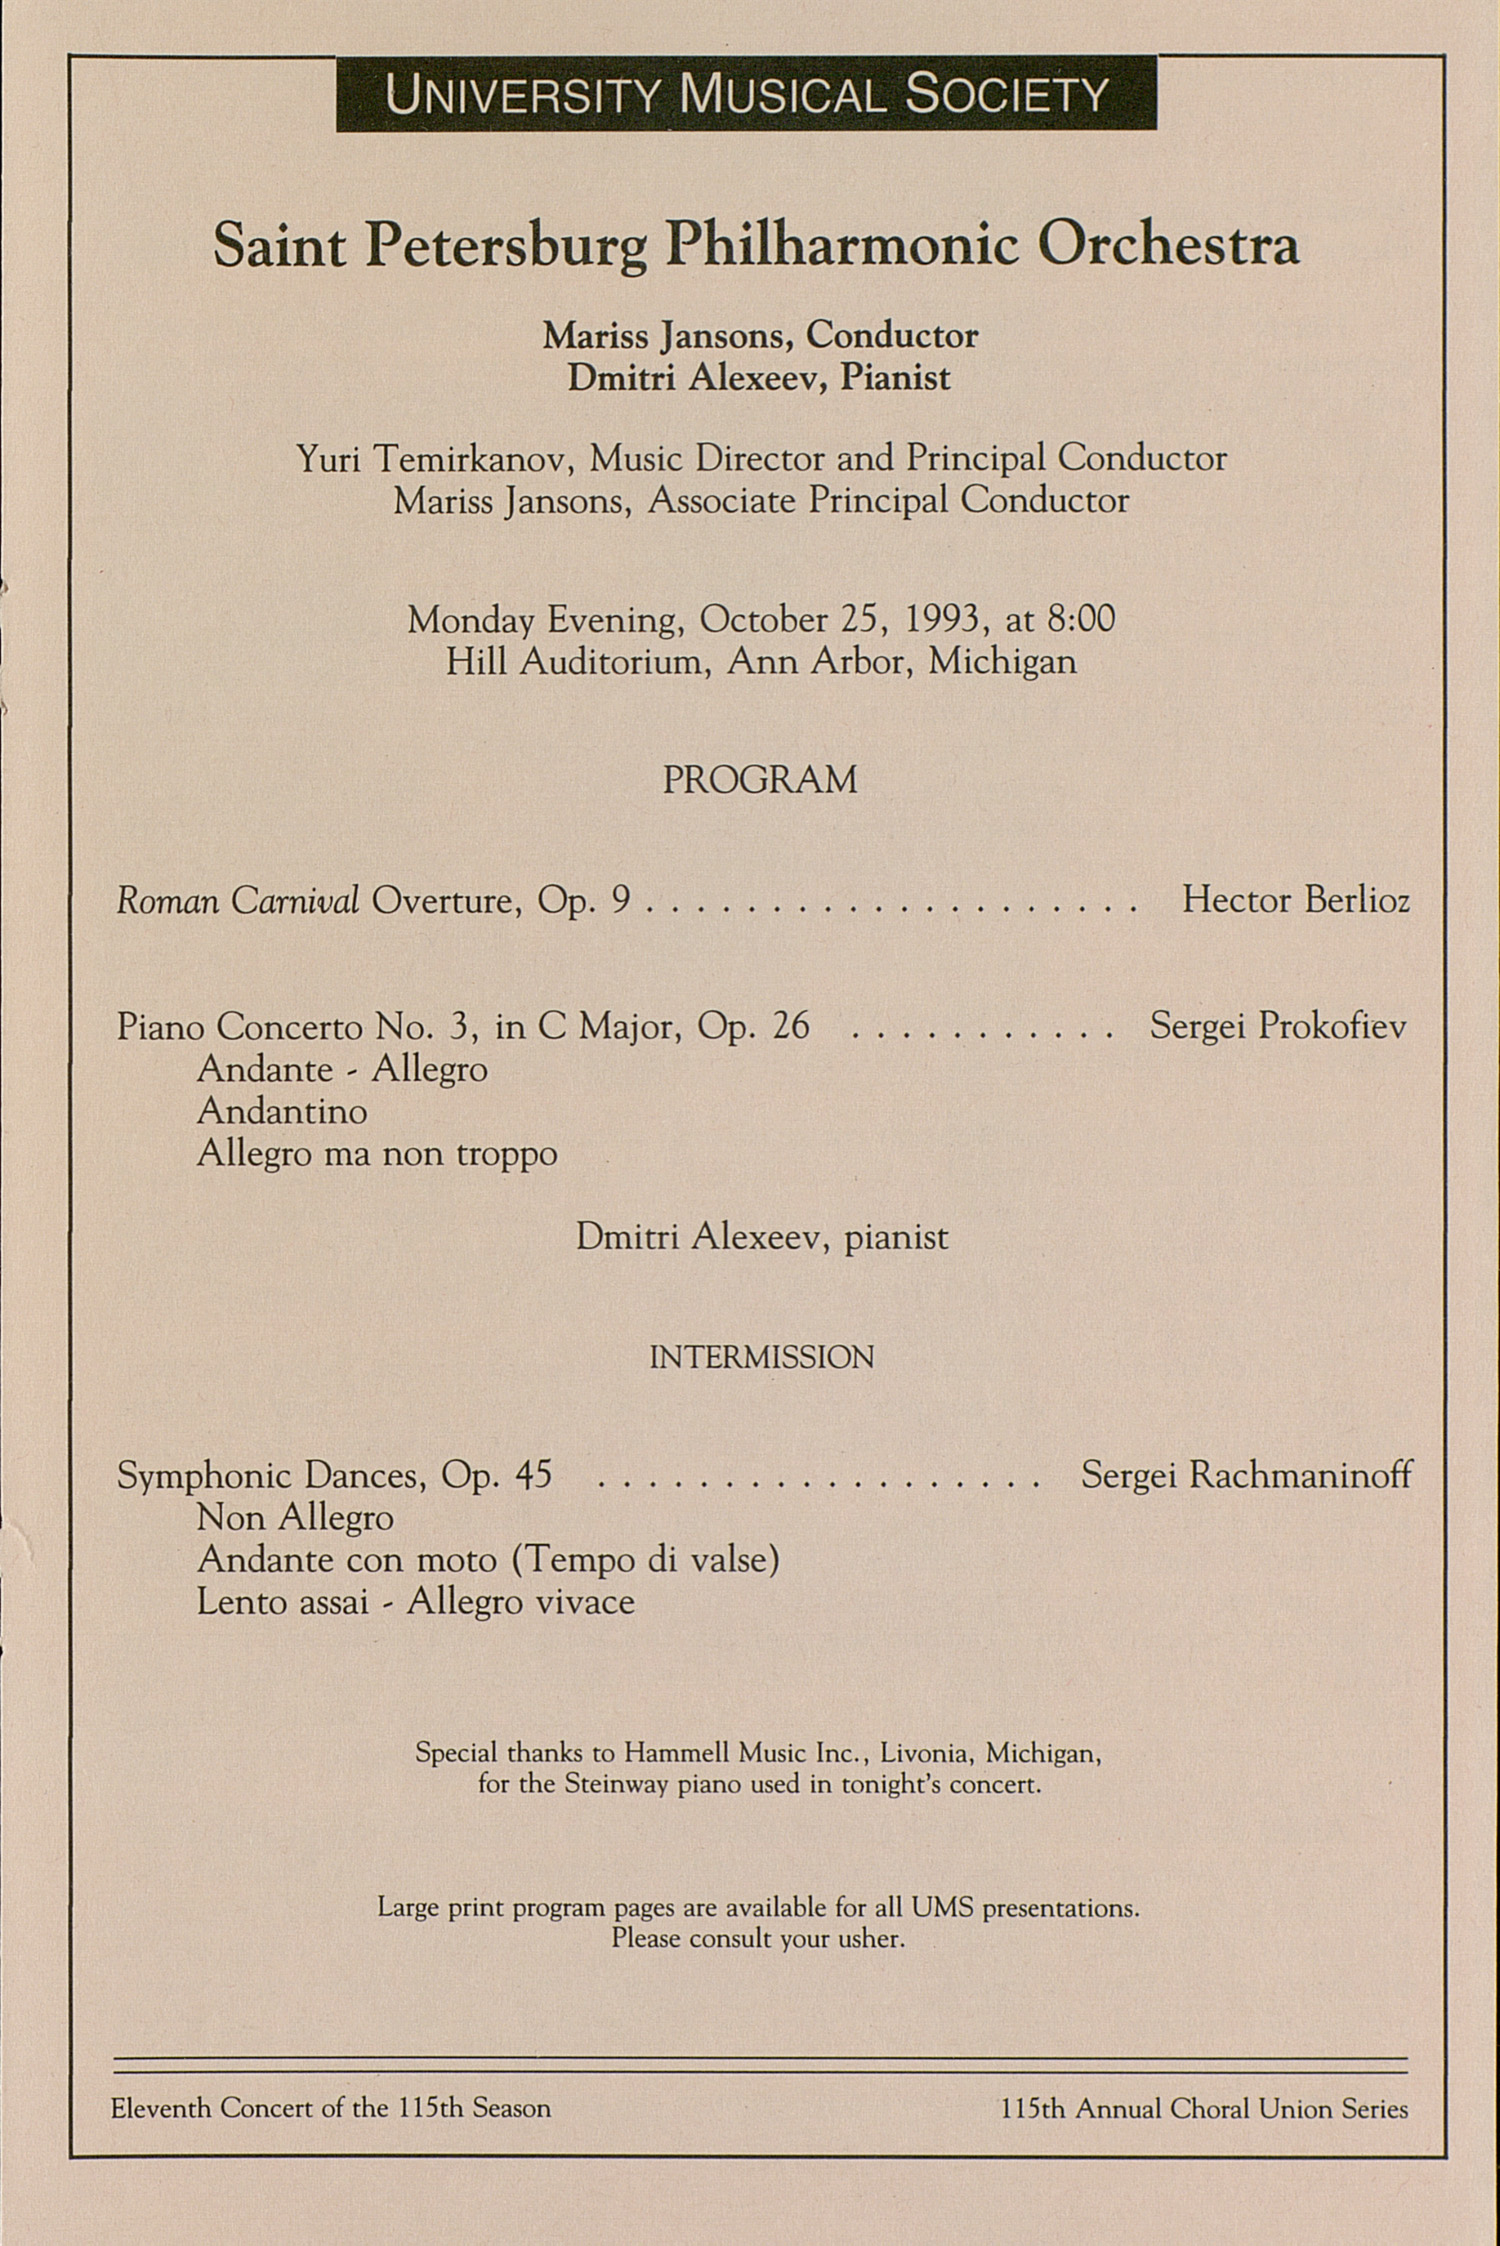 UMS Concert Program, October 25, 1993: University Musical Society -- Saint Petersburg Philharmonic Orchestra image